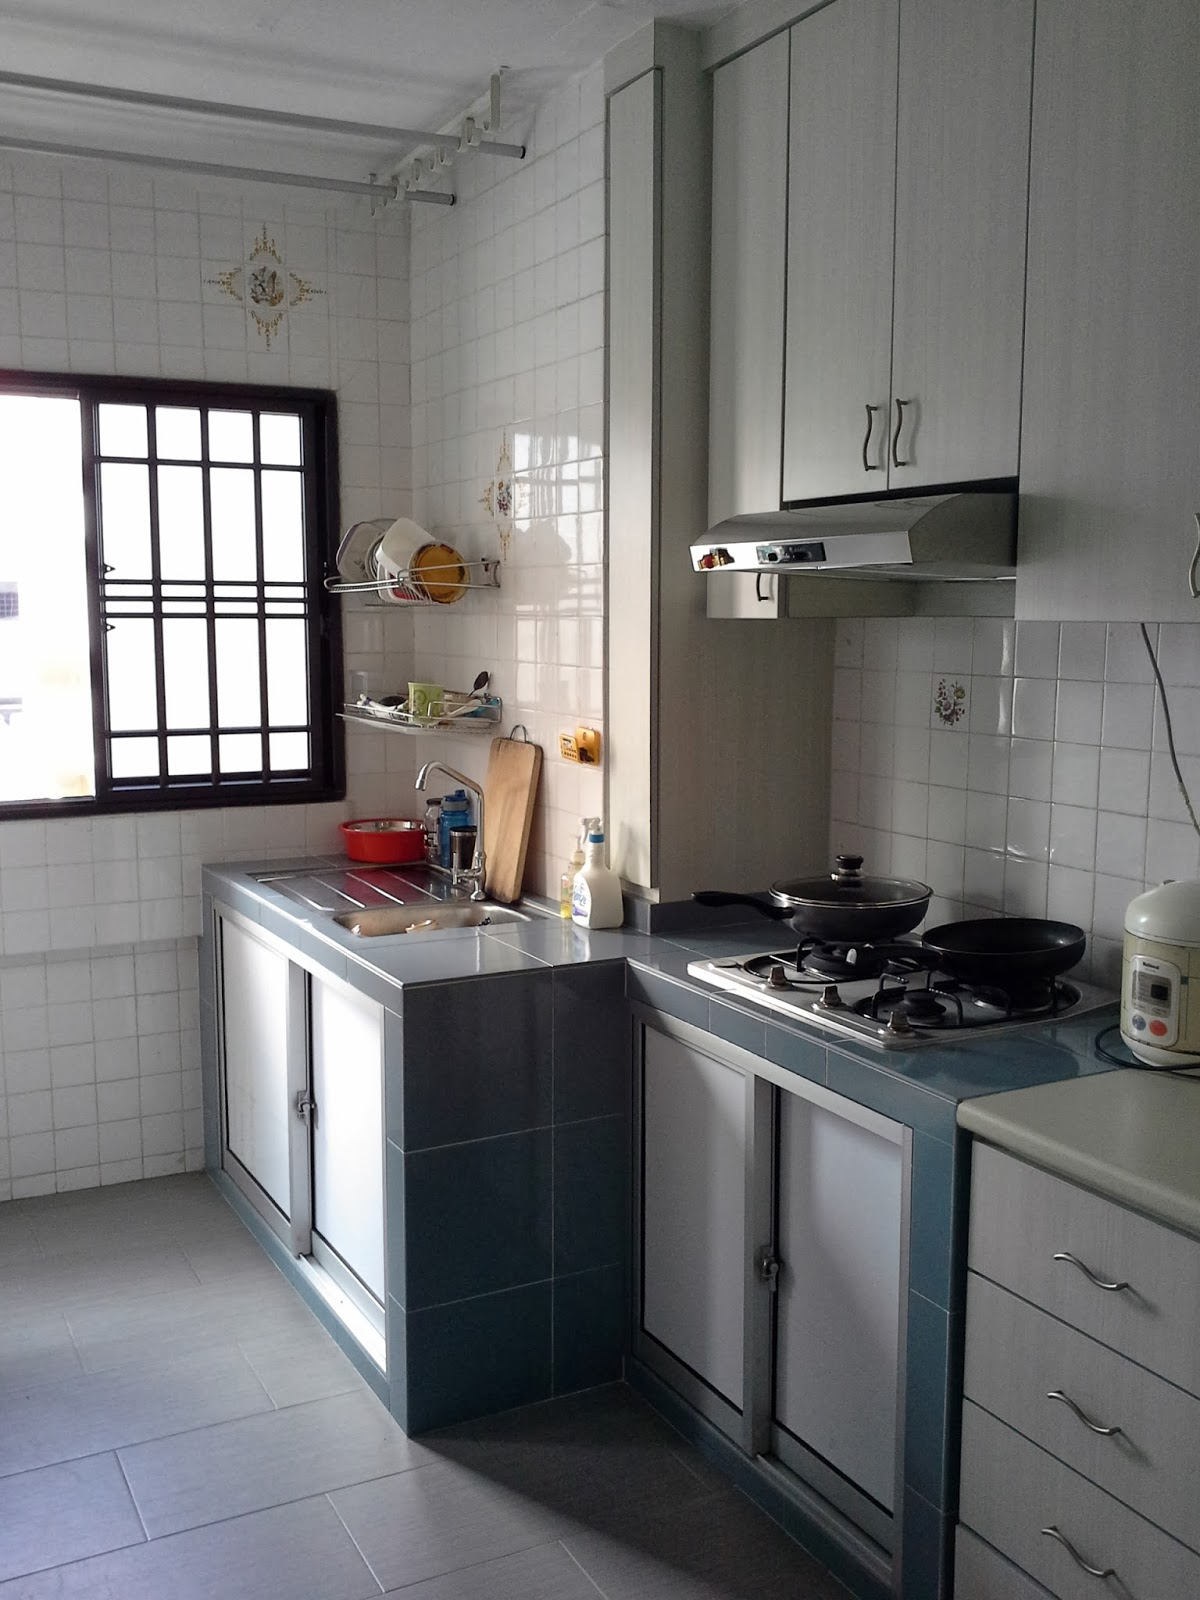 Kitchen Tiles Singapore singapore hdb resale 2014: kitchen